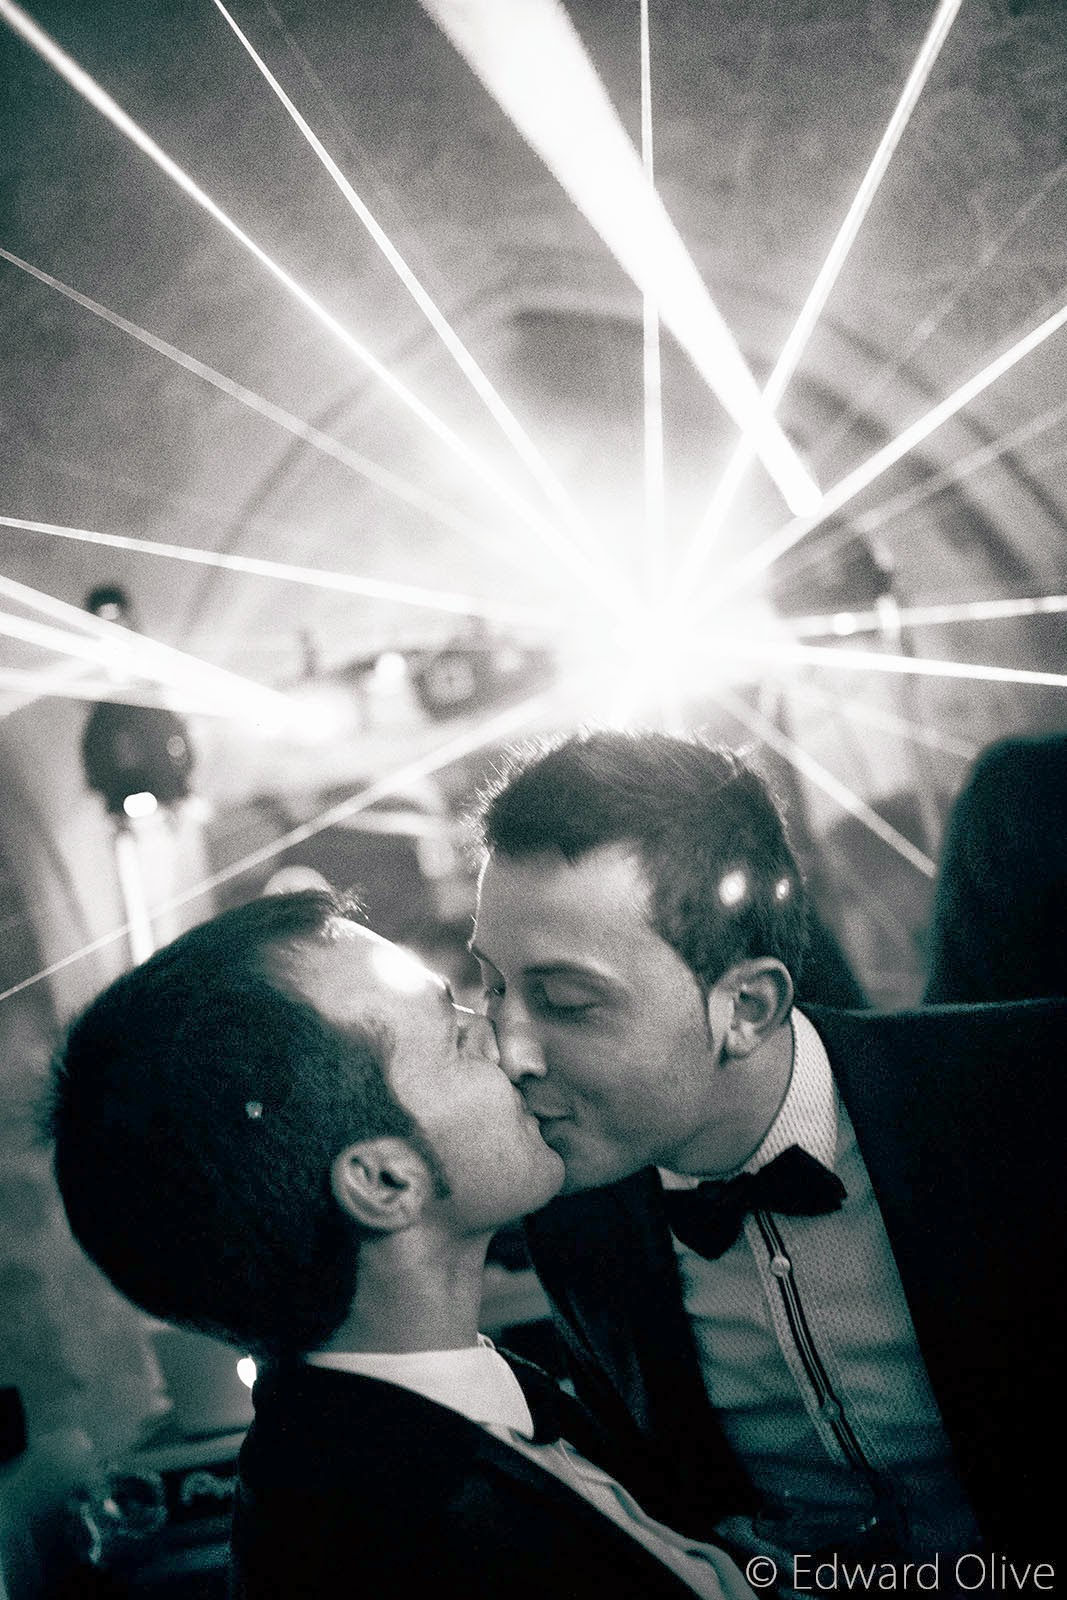 Are mistaken. Kiss lesbian party video wedding excited too